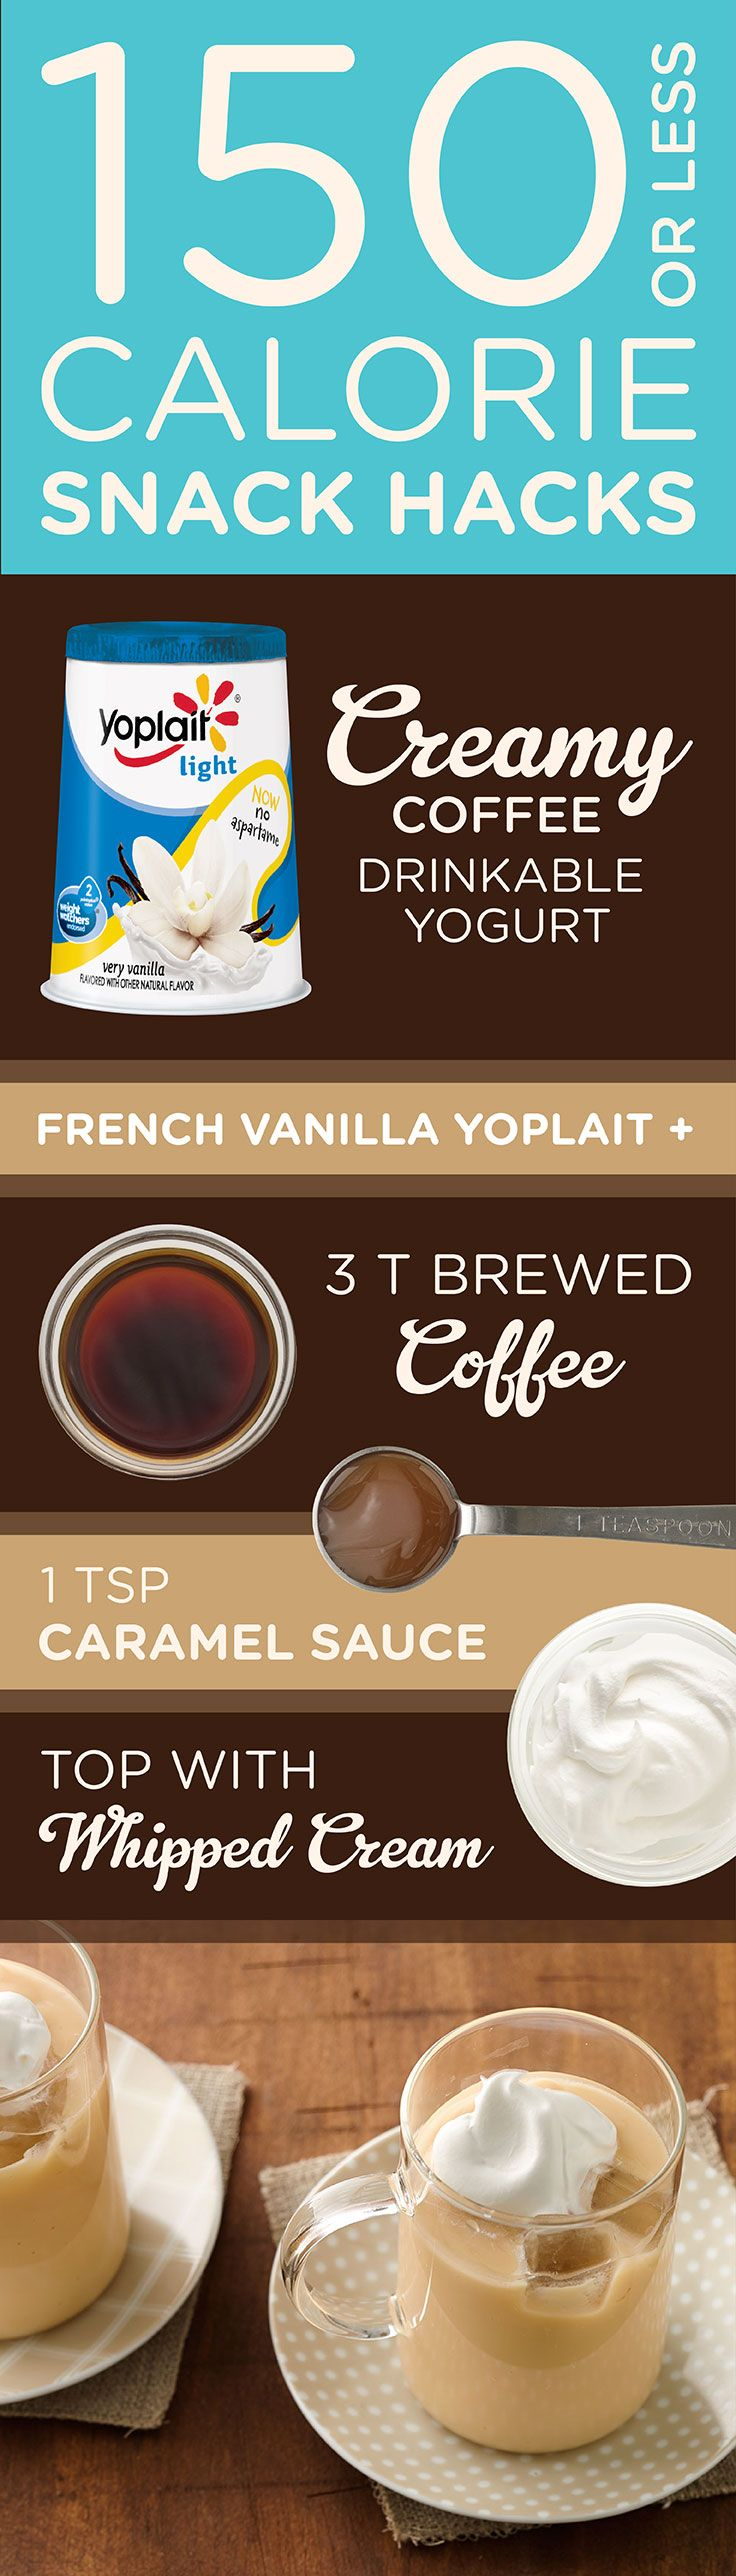 A Creamy Coffee treat without all the calories? Try this Creamy Coffee Yogurt drink featuring Yoplait Light Vanilla yogurt for a delicious snack with less than 150 calories.